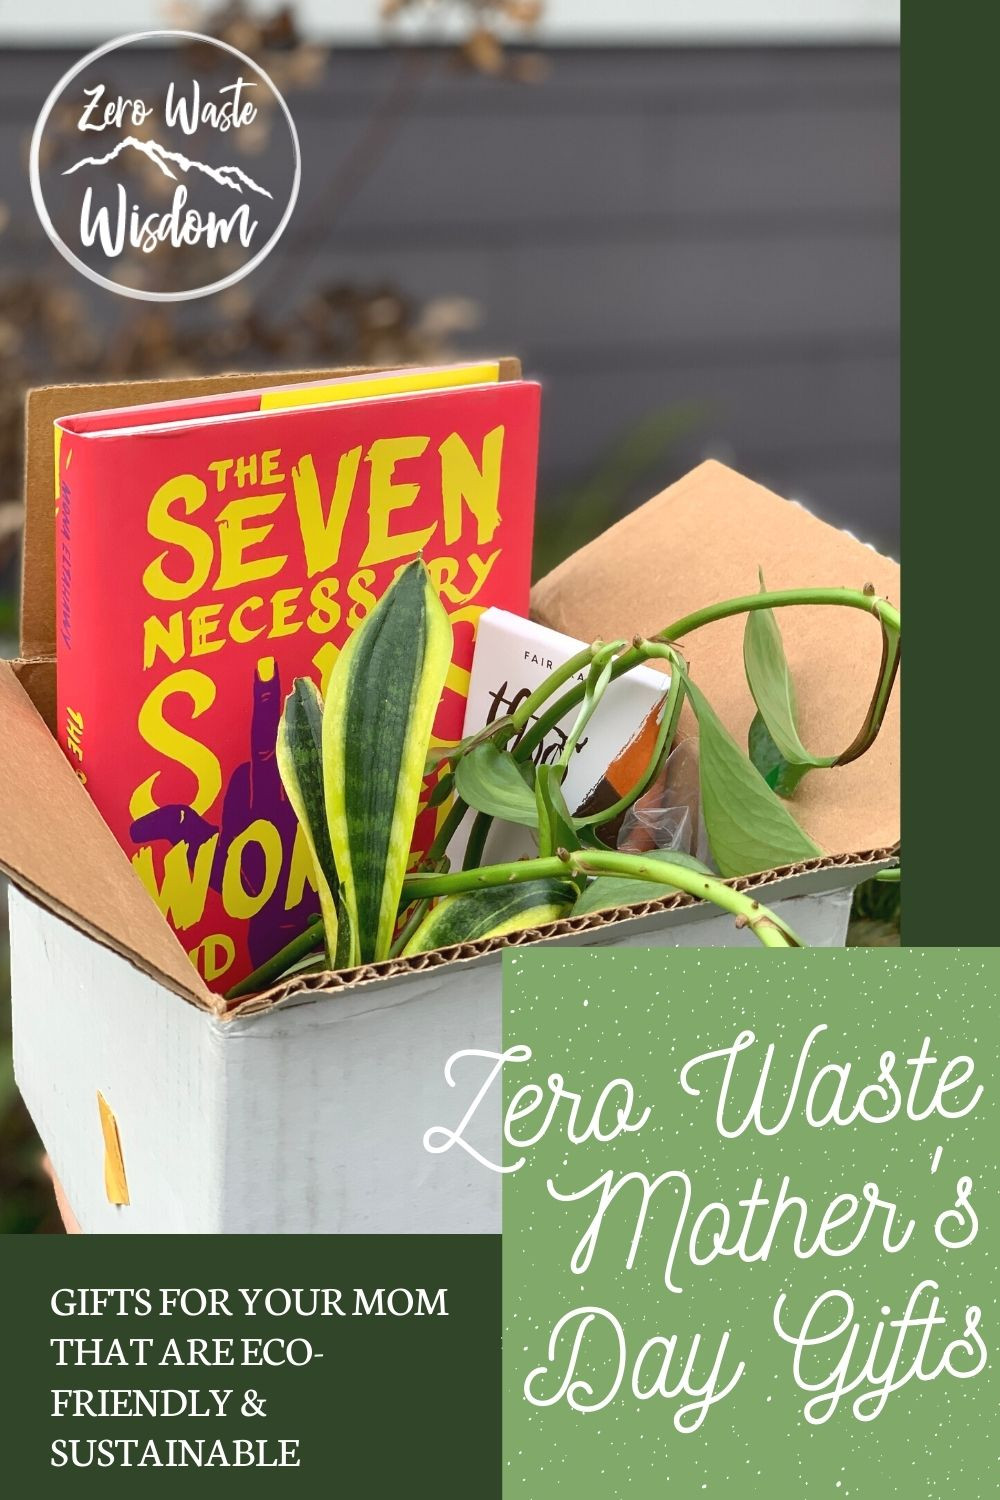 Zero Waste Mother's Day Gifts Pinterest Graphic with book, plant, and chocolate